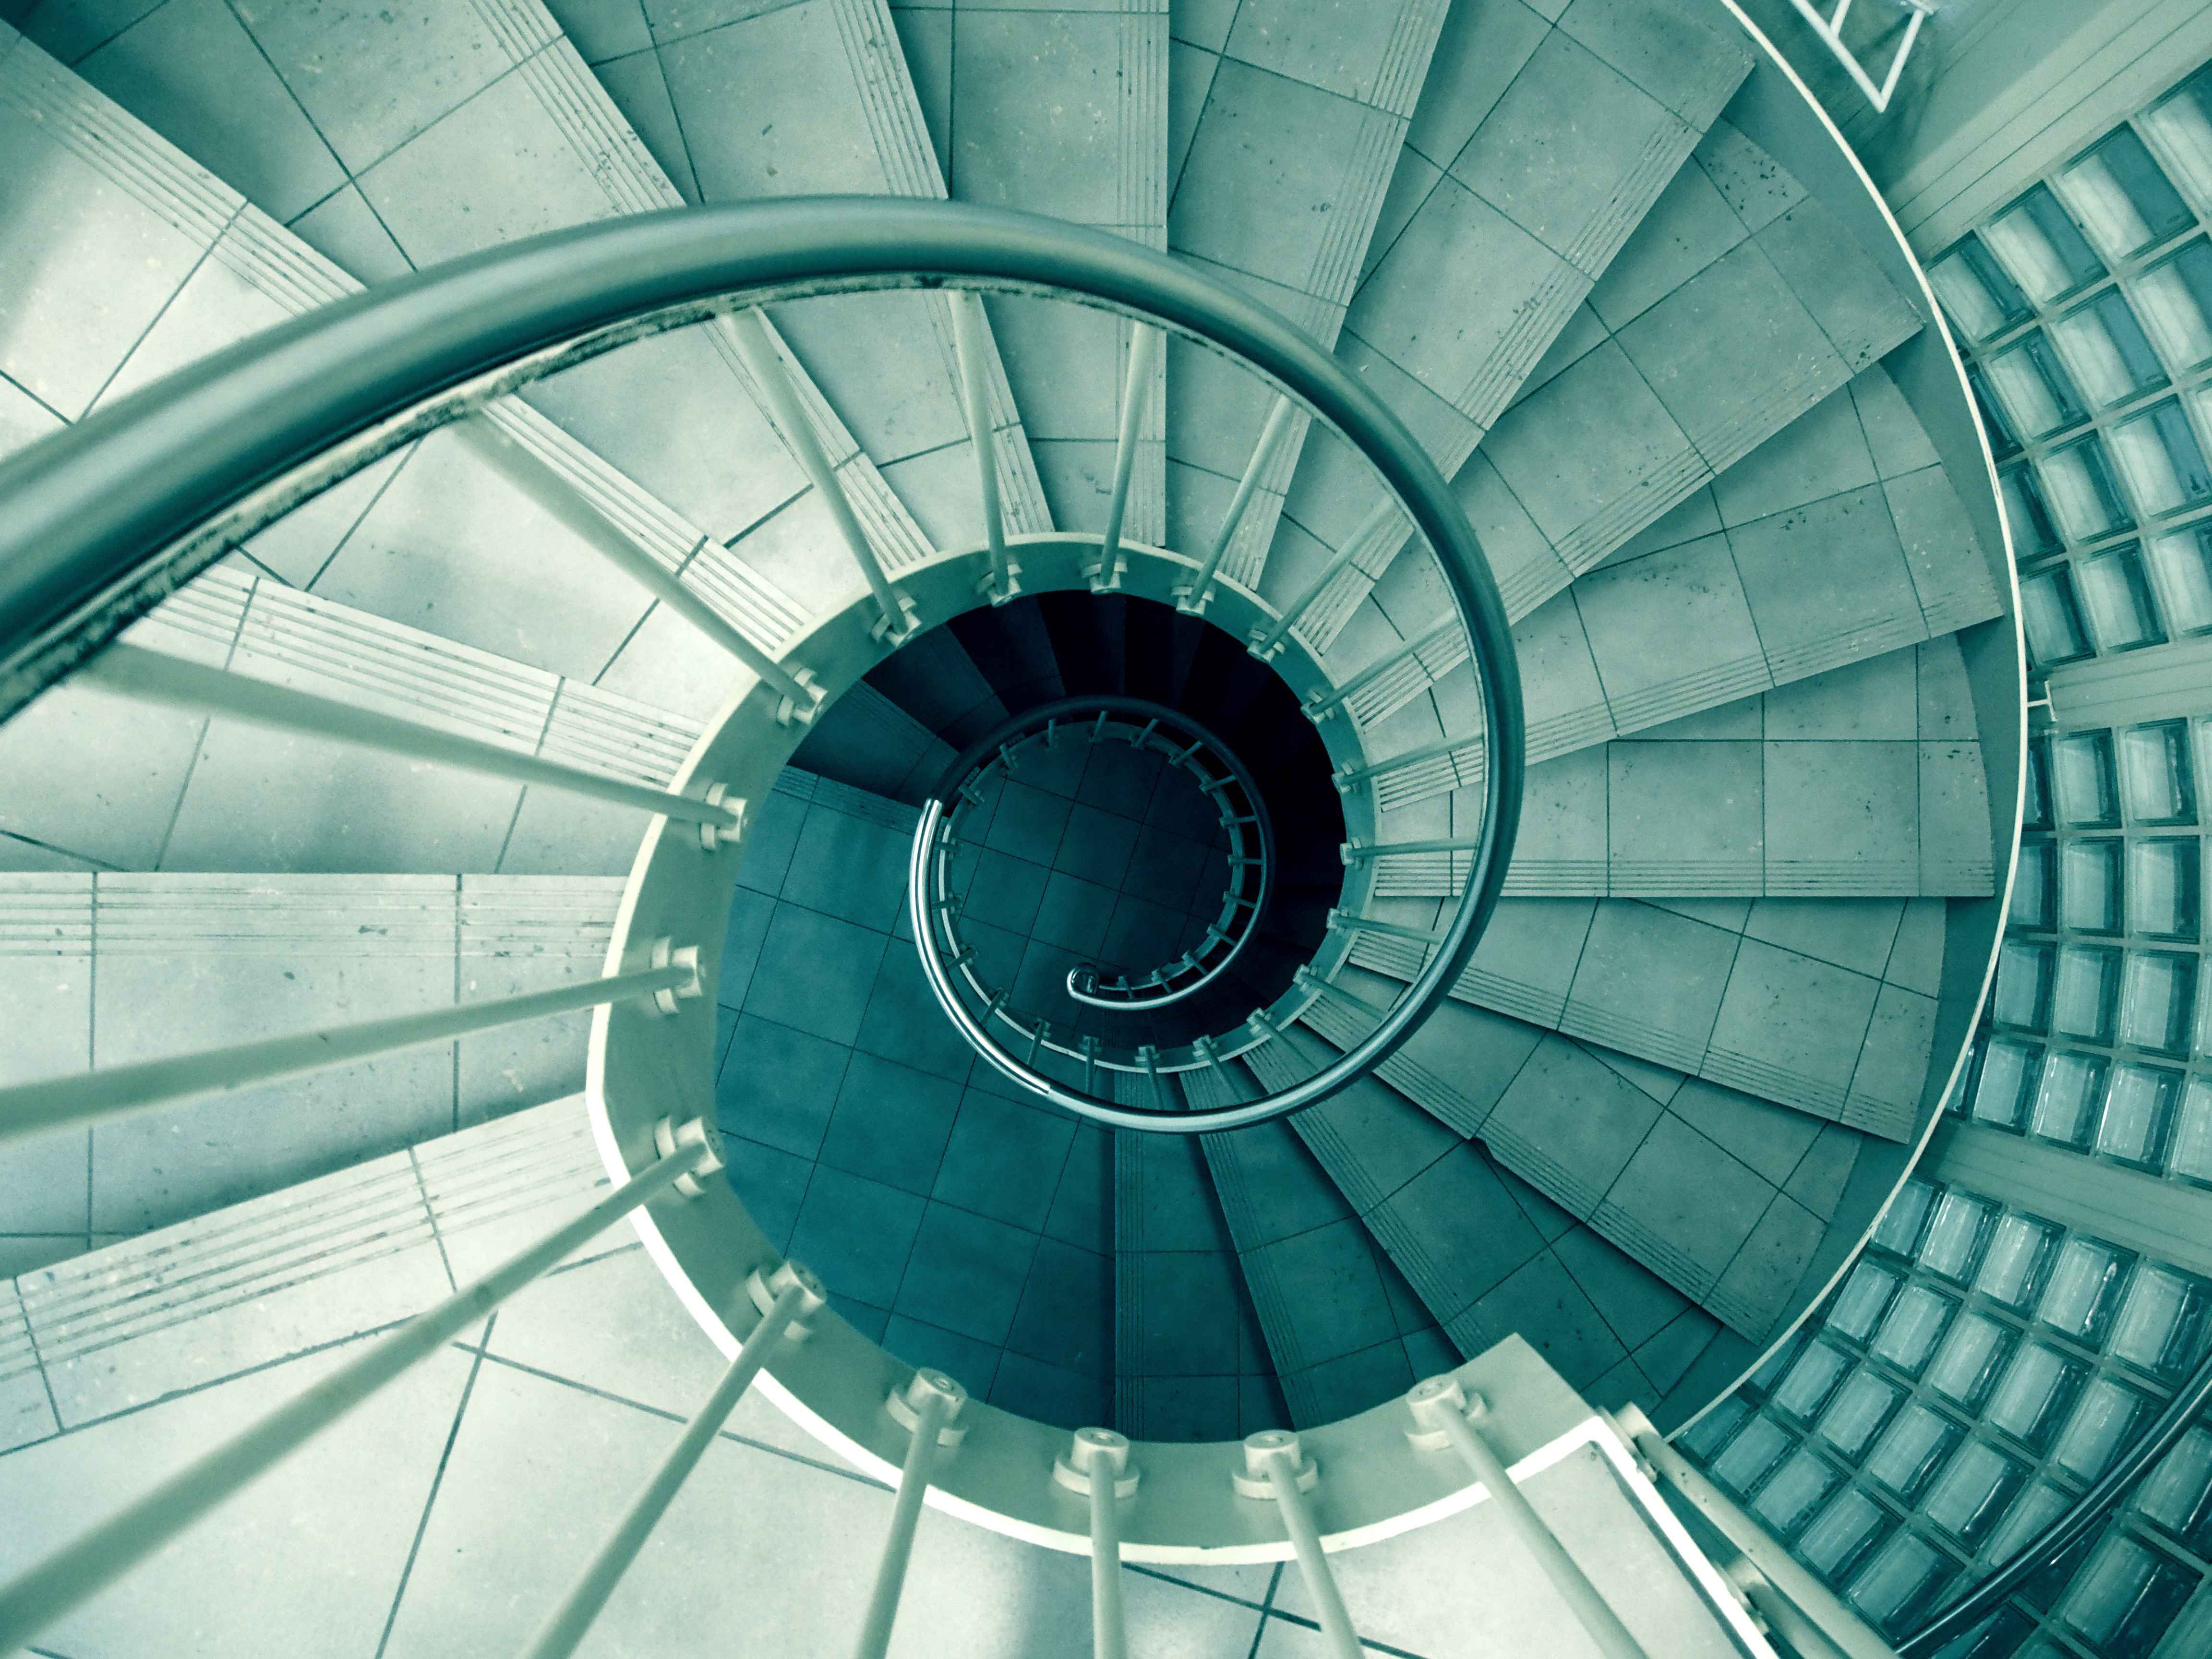 spiral staircase teal